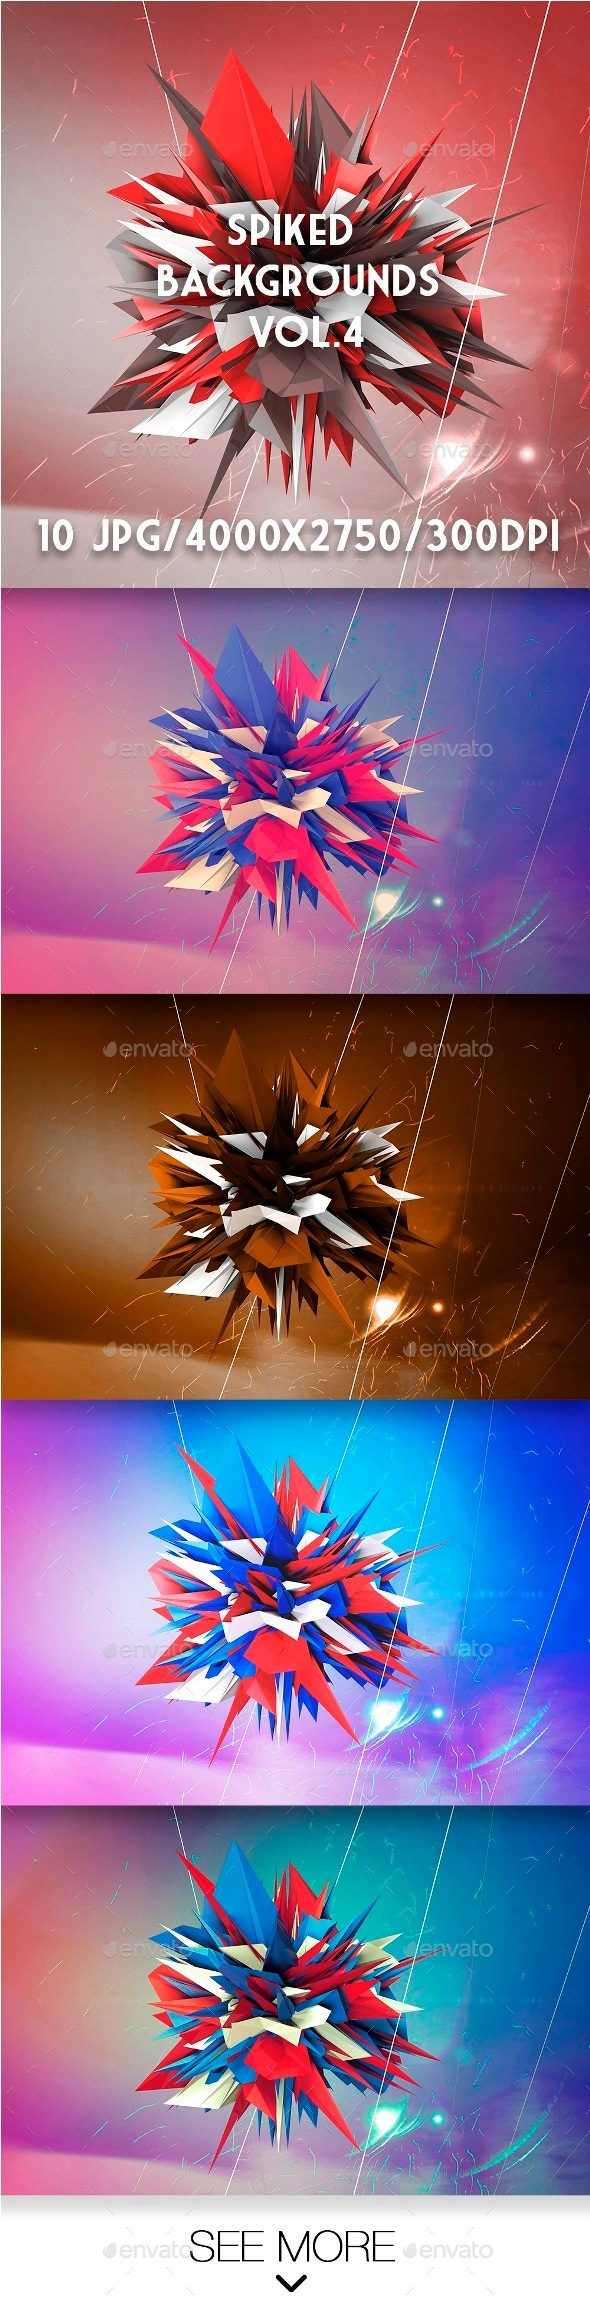 Spiked Backgrounds Vol.4 - Abstract Backgrounds